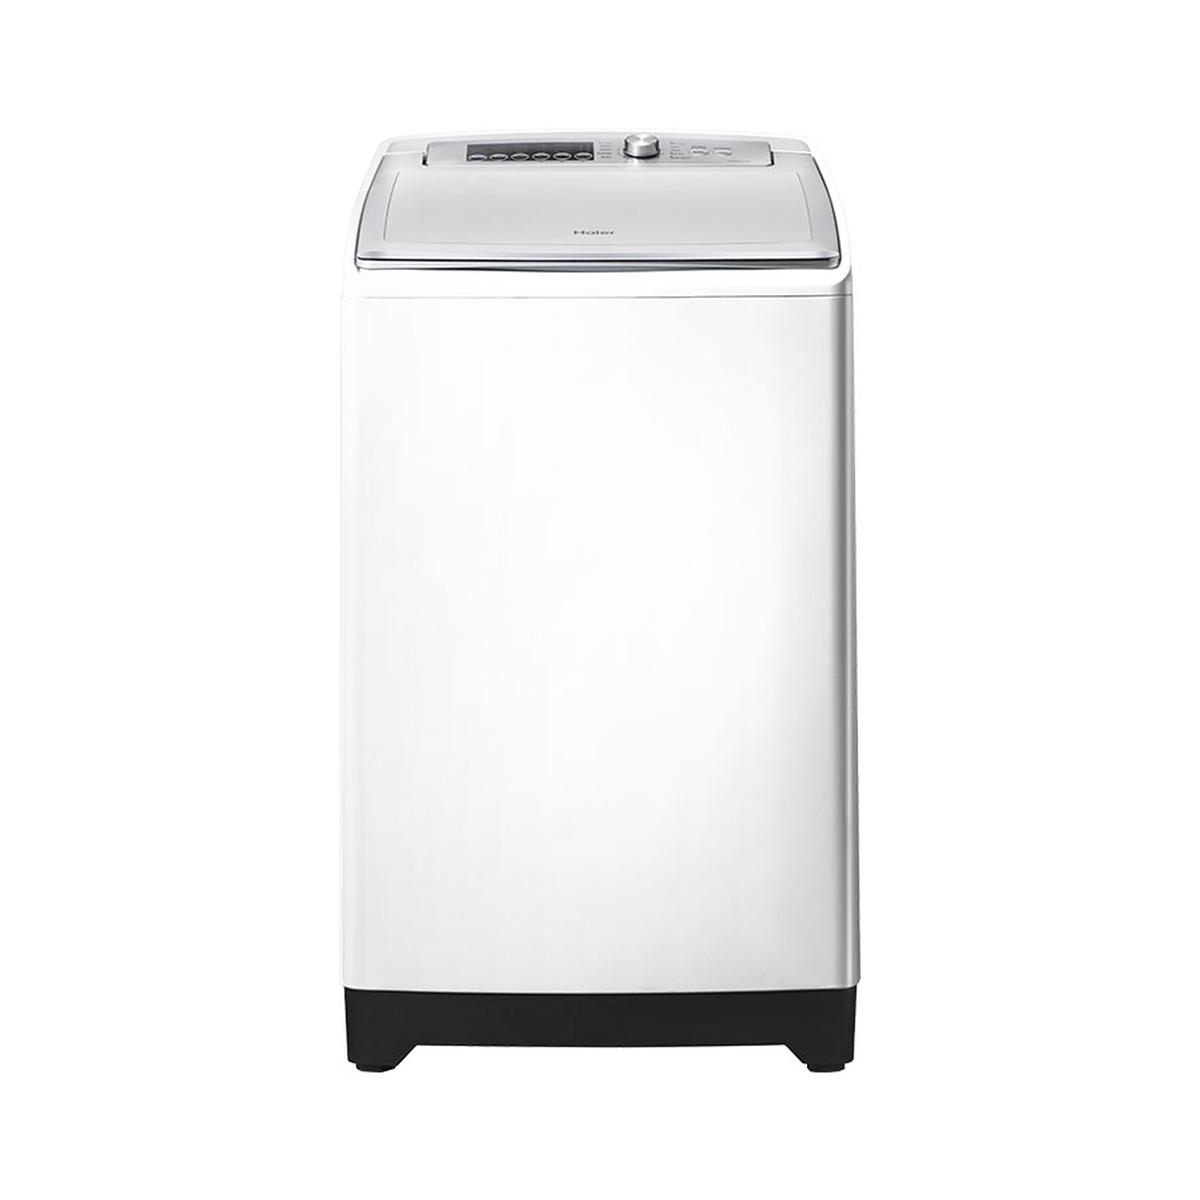 Haier HWMSP70 7kg Top Load Washing Machine